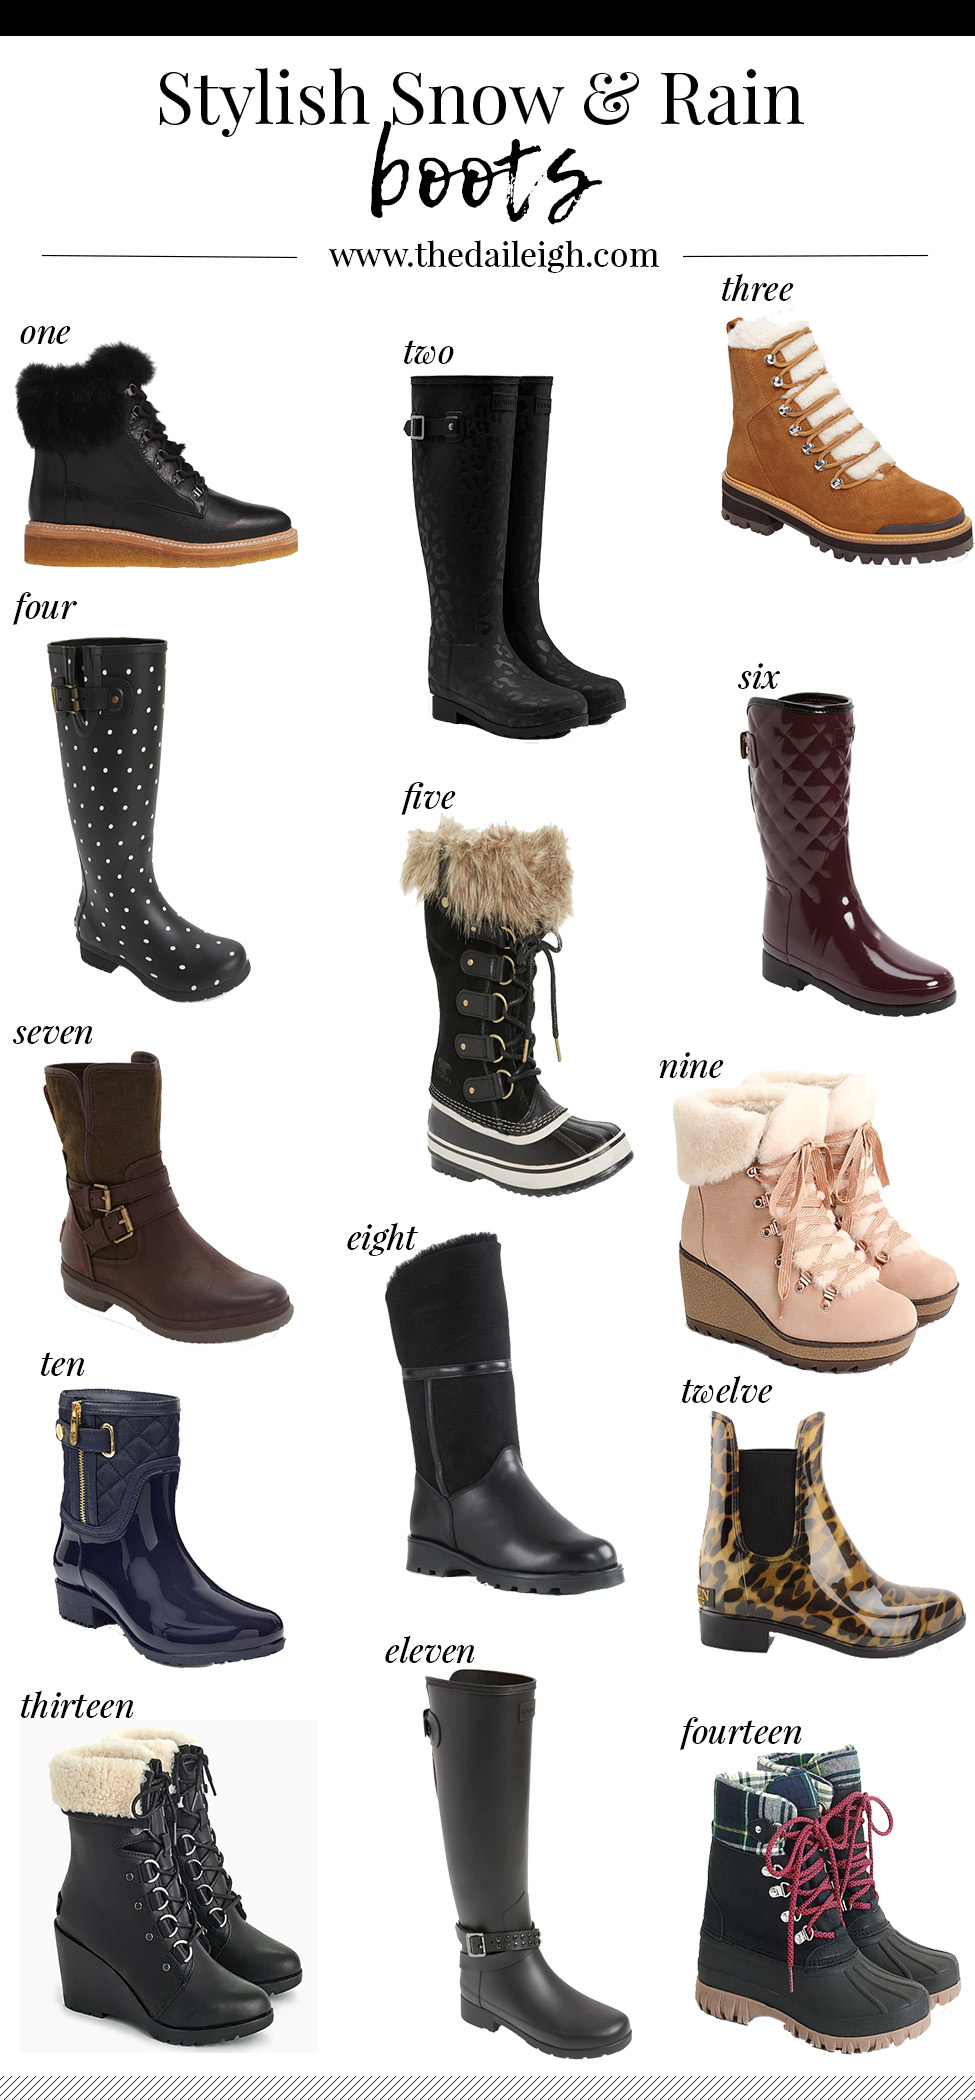 Stylish Boots To Wear In The Snow And Rain